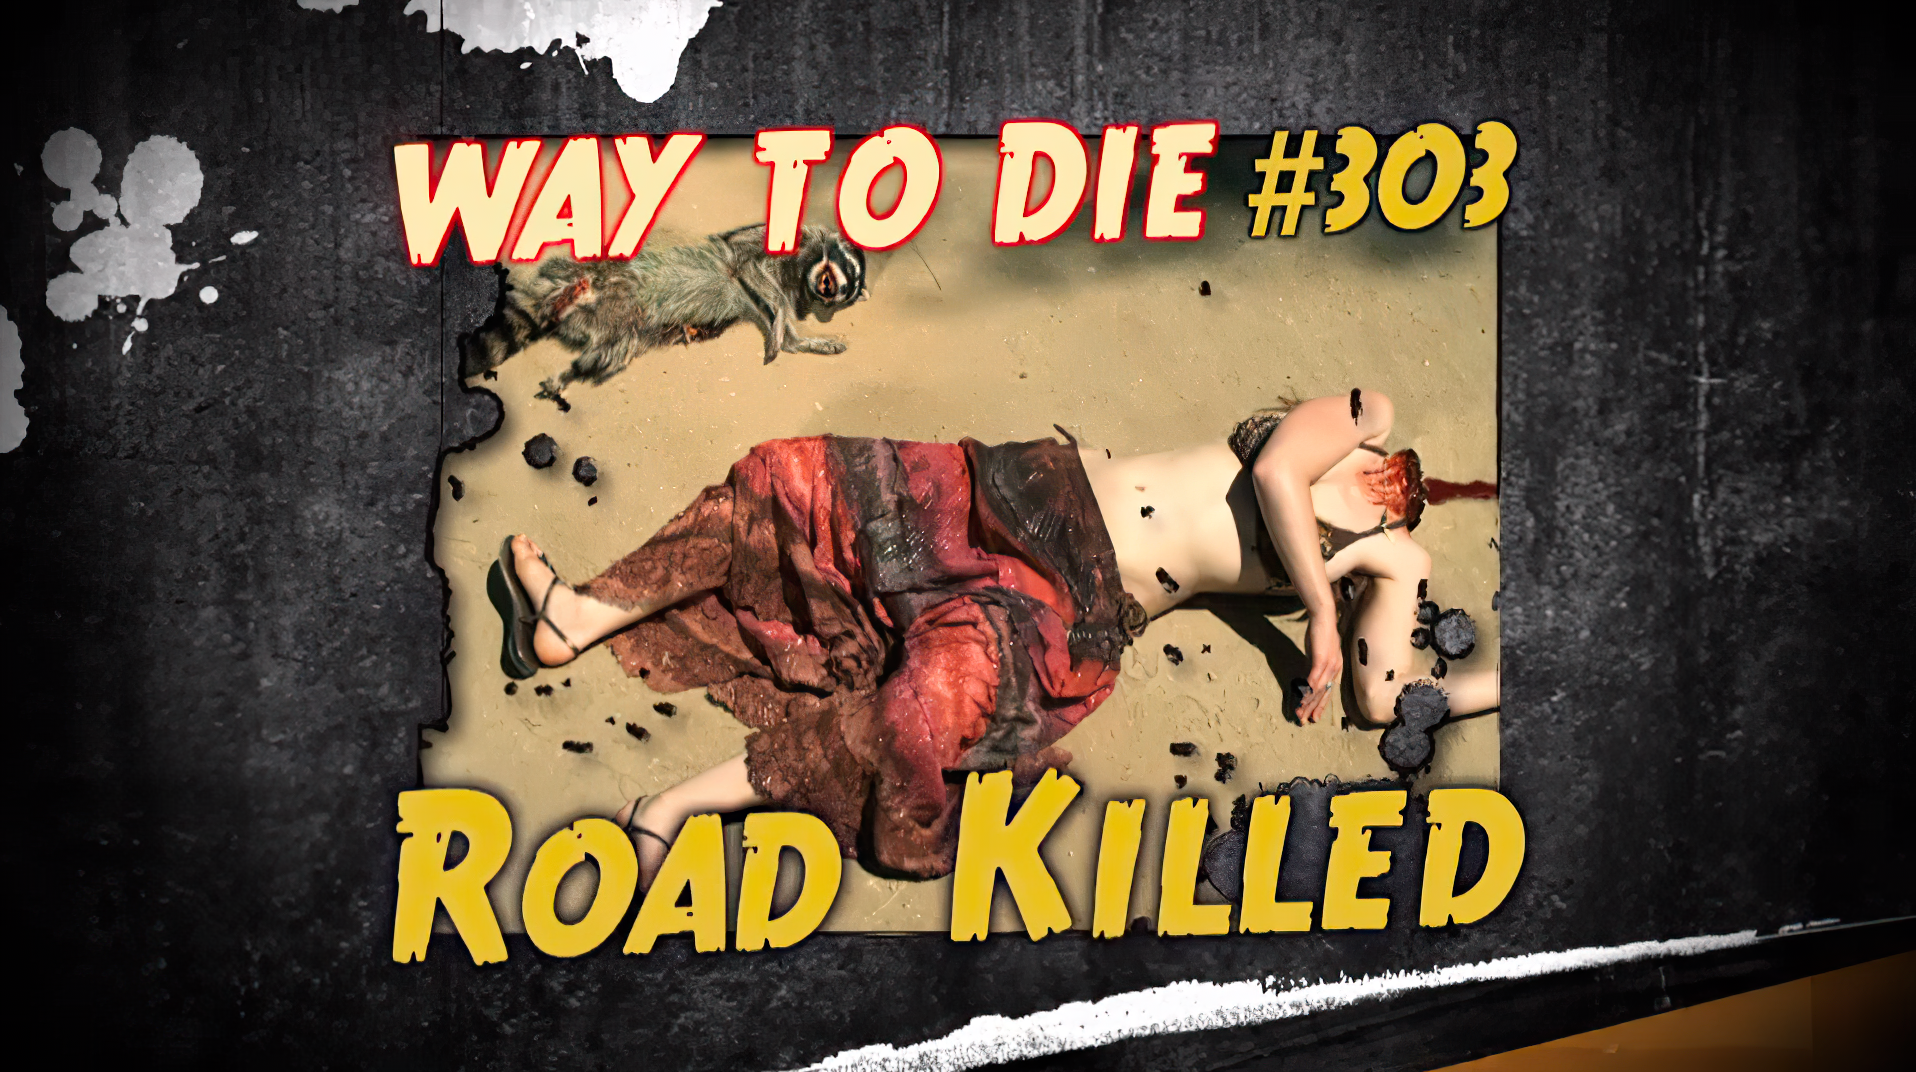 Road killed 1000 ways to die wiki fandom powered by wikia